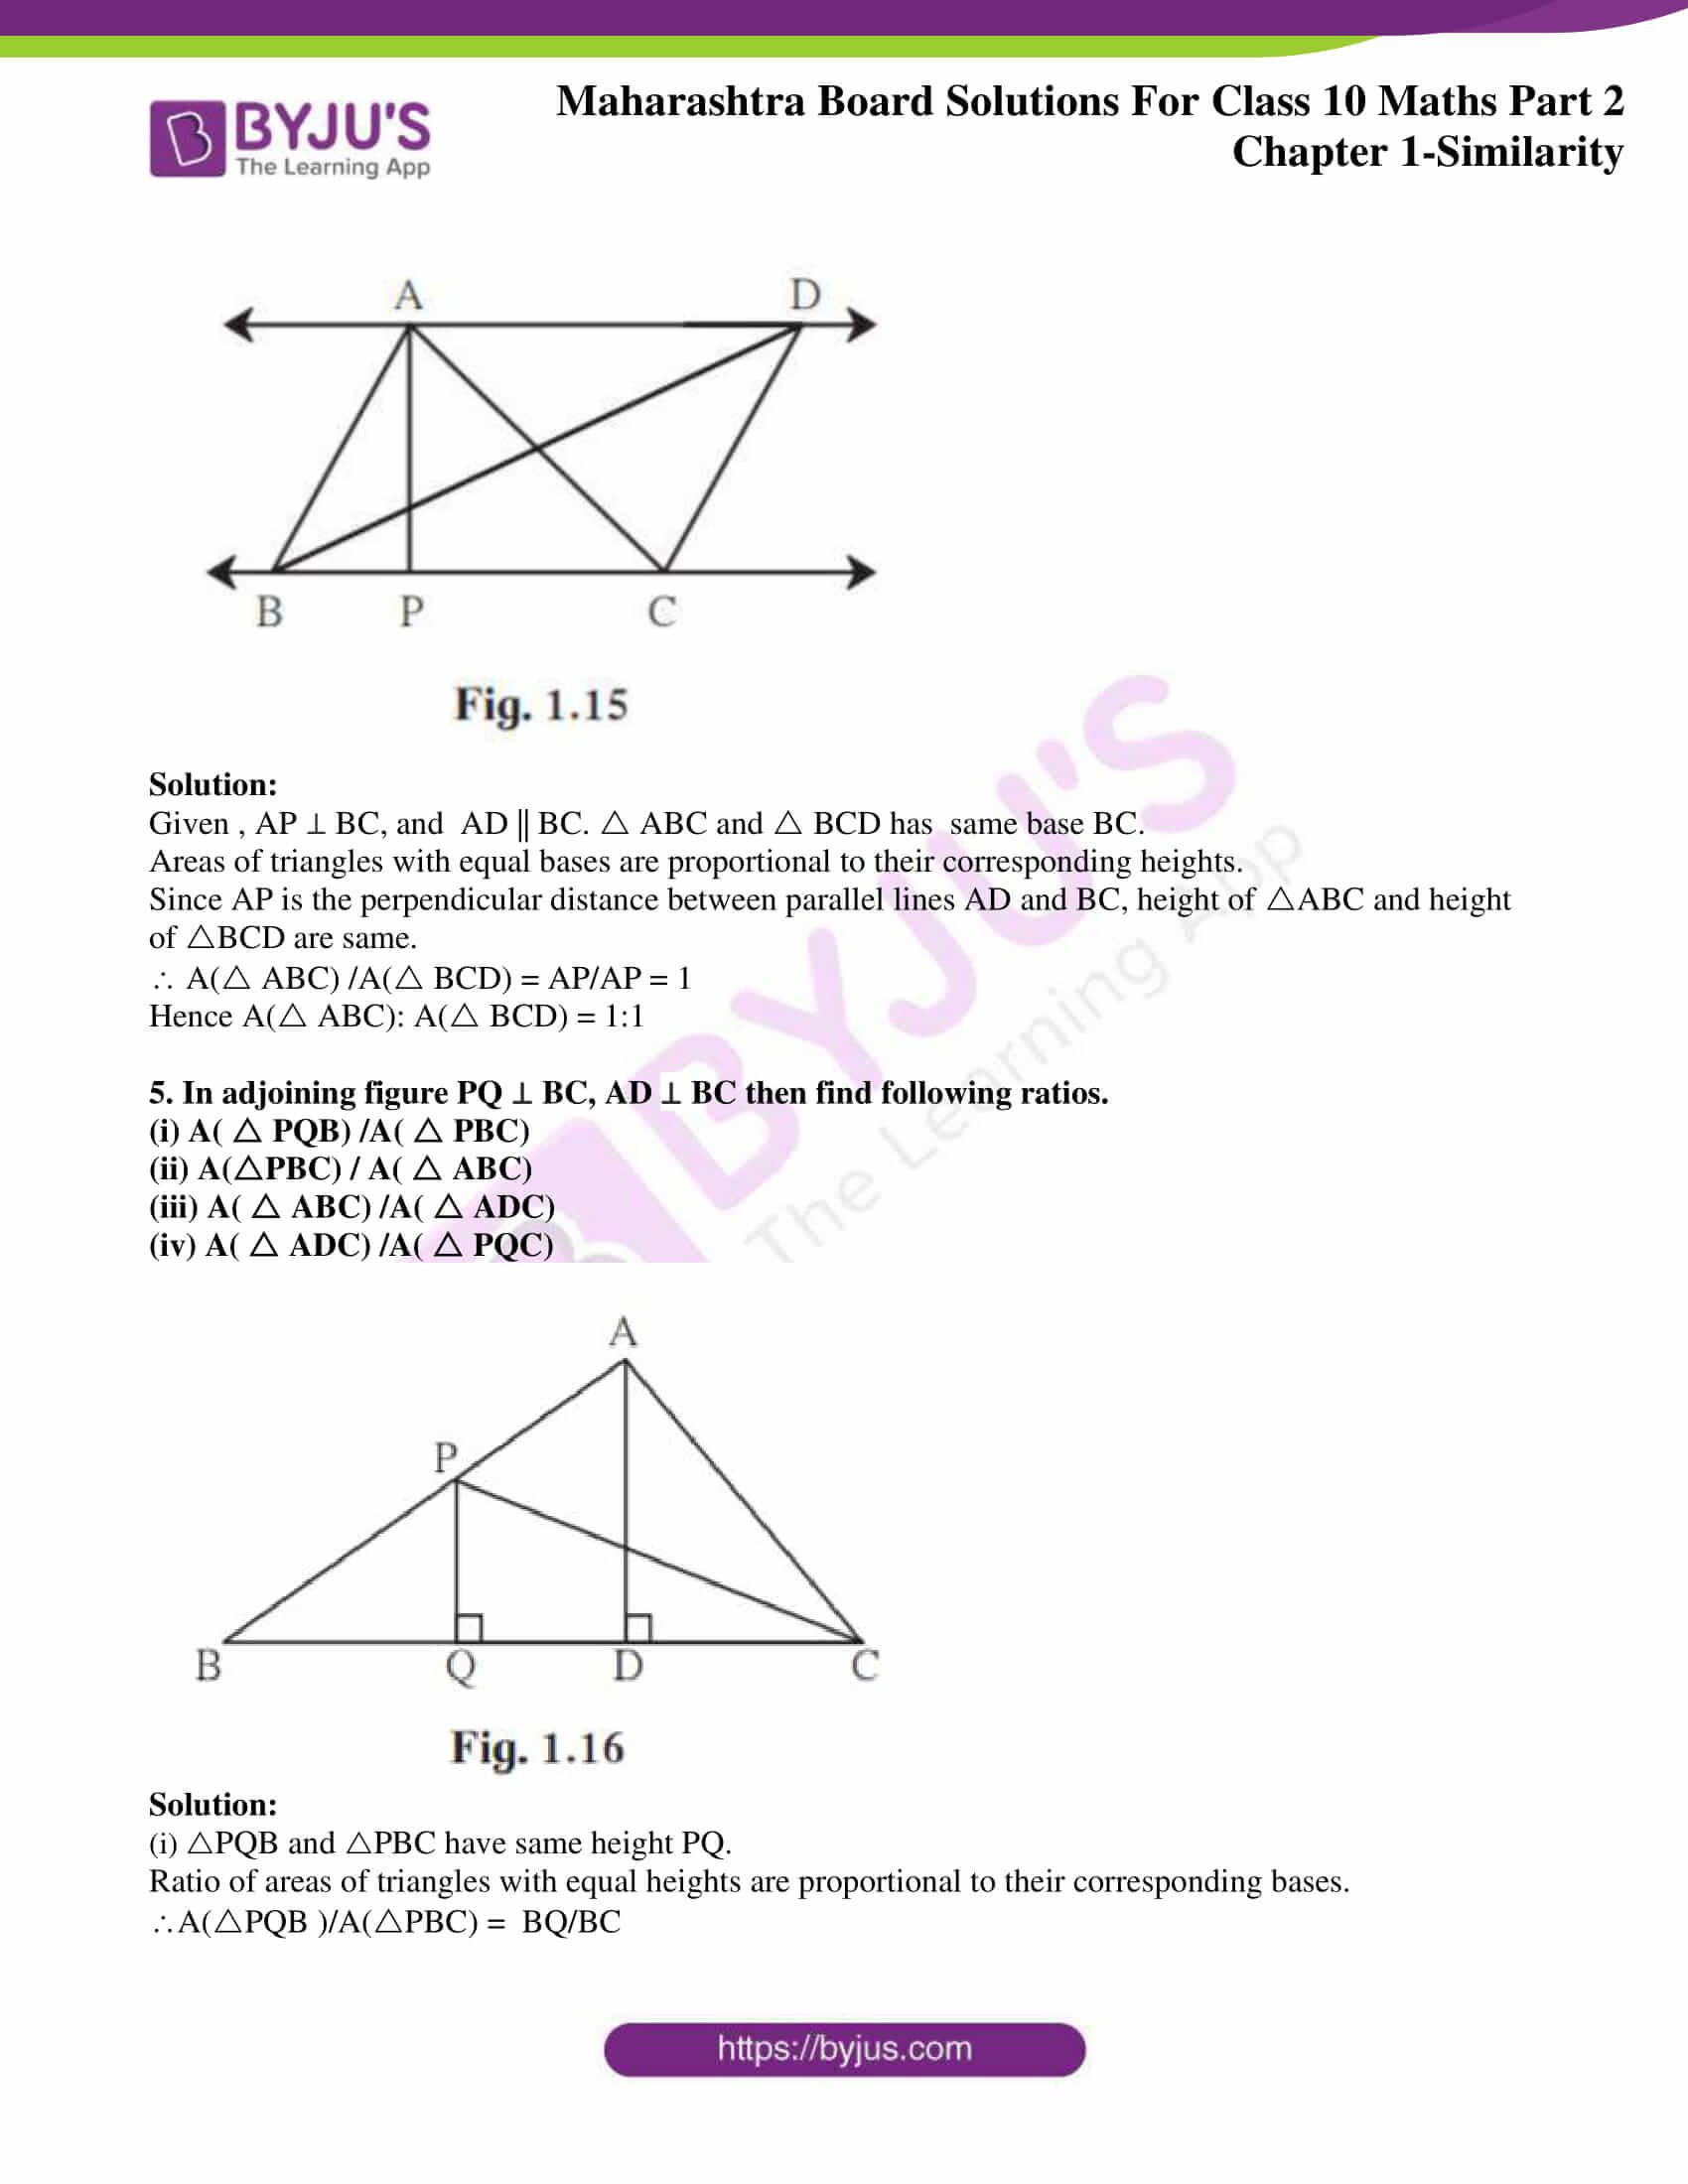 msbshse sol class 10 maths part 2 chapter 1 03